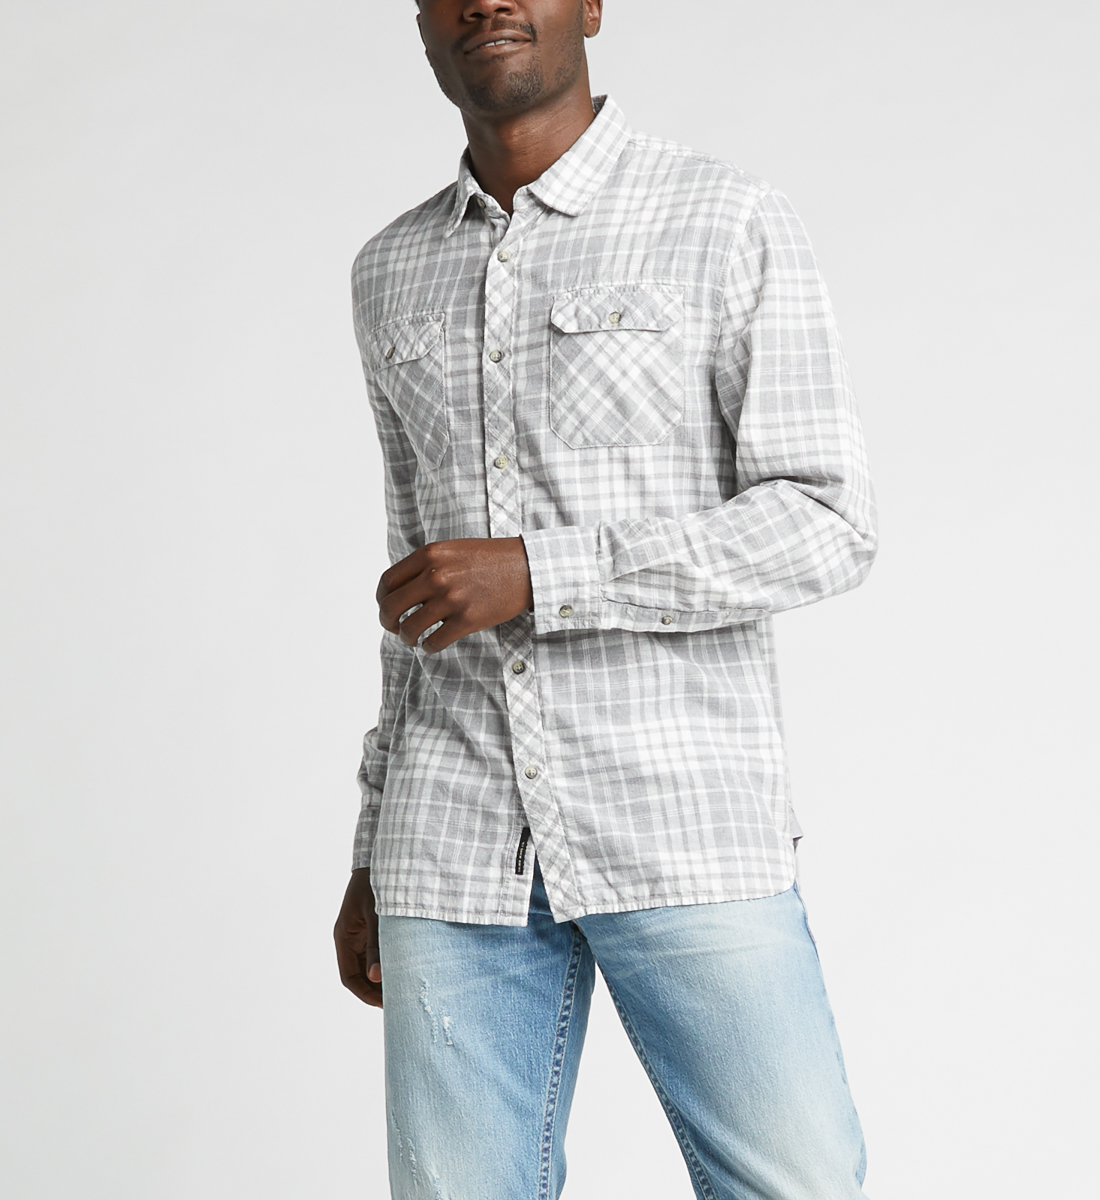 Charly Long-Sleeve Plaid Button-Down Shirt,Grey Front